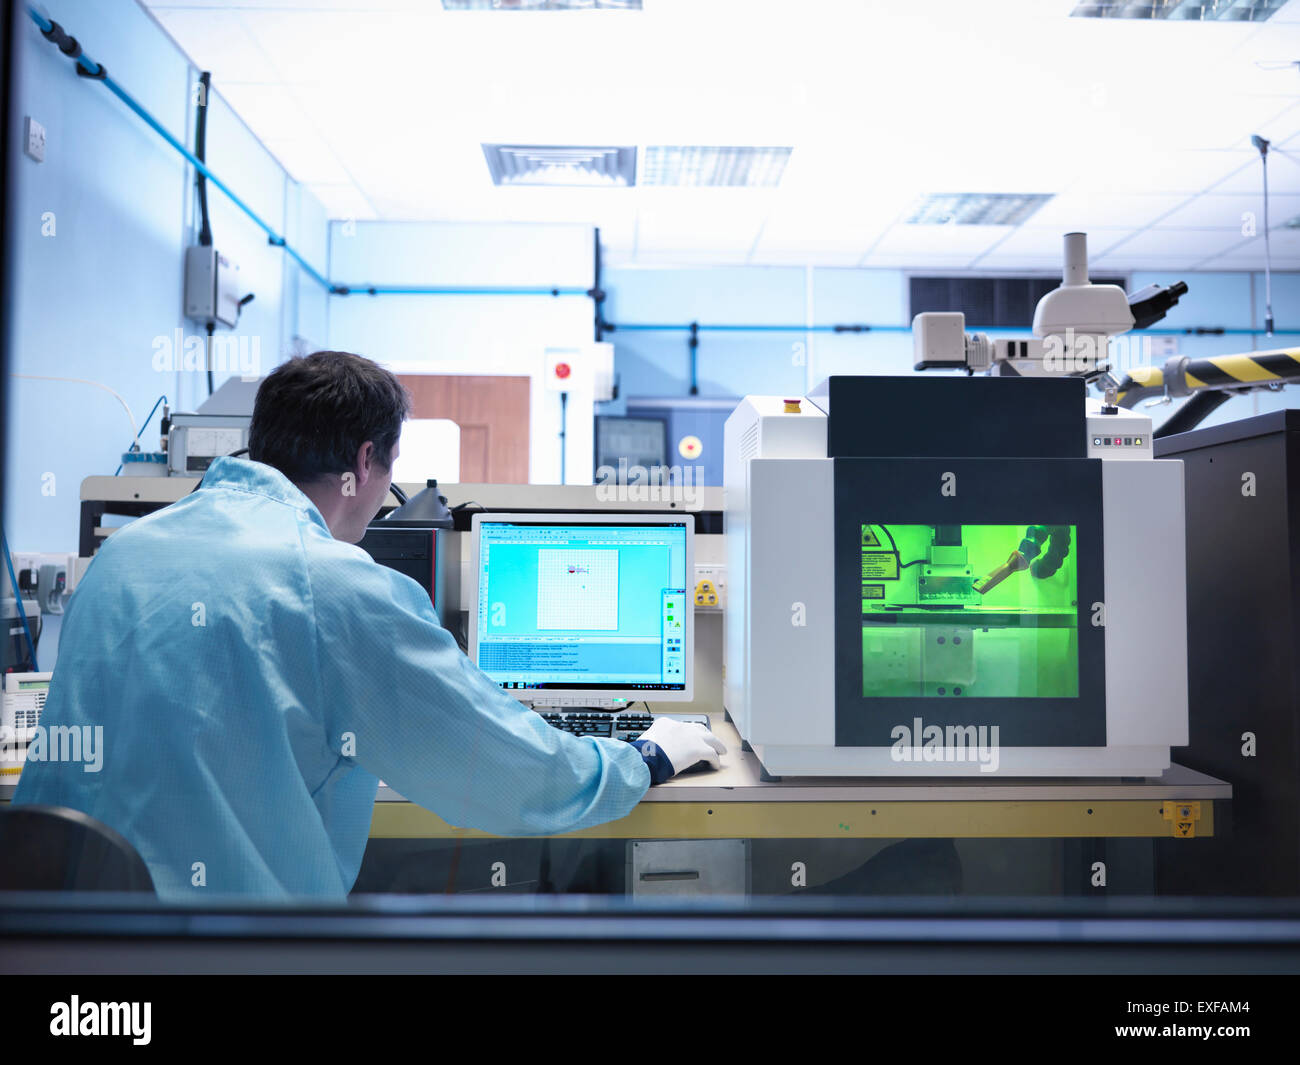 Worker operating laser marking machine in clean room laboratory - Stock Image